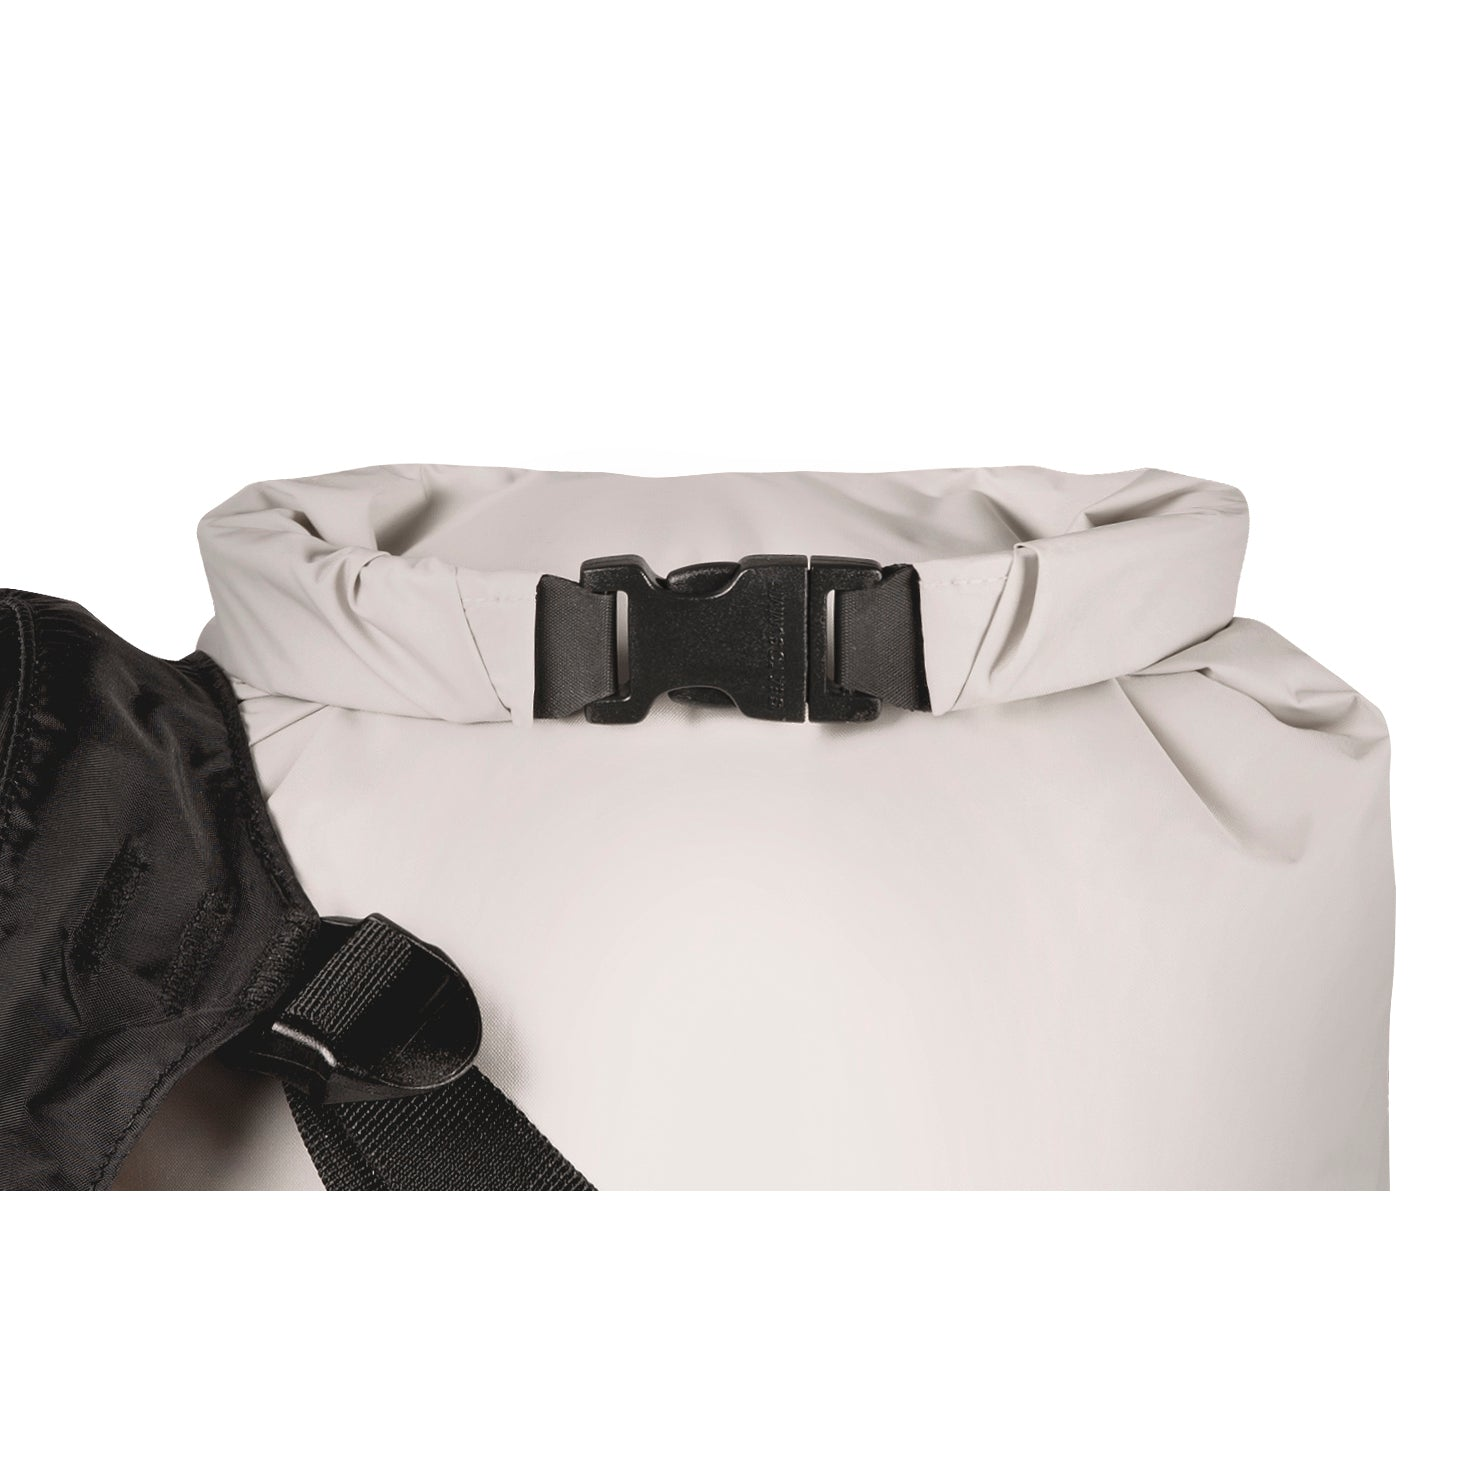 eVent Compression Dry Bag _ sleeping bag compression sack _ 1